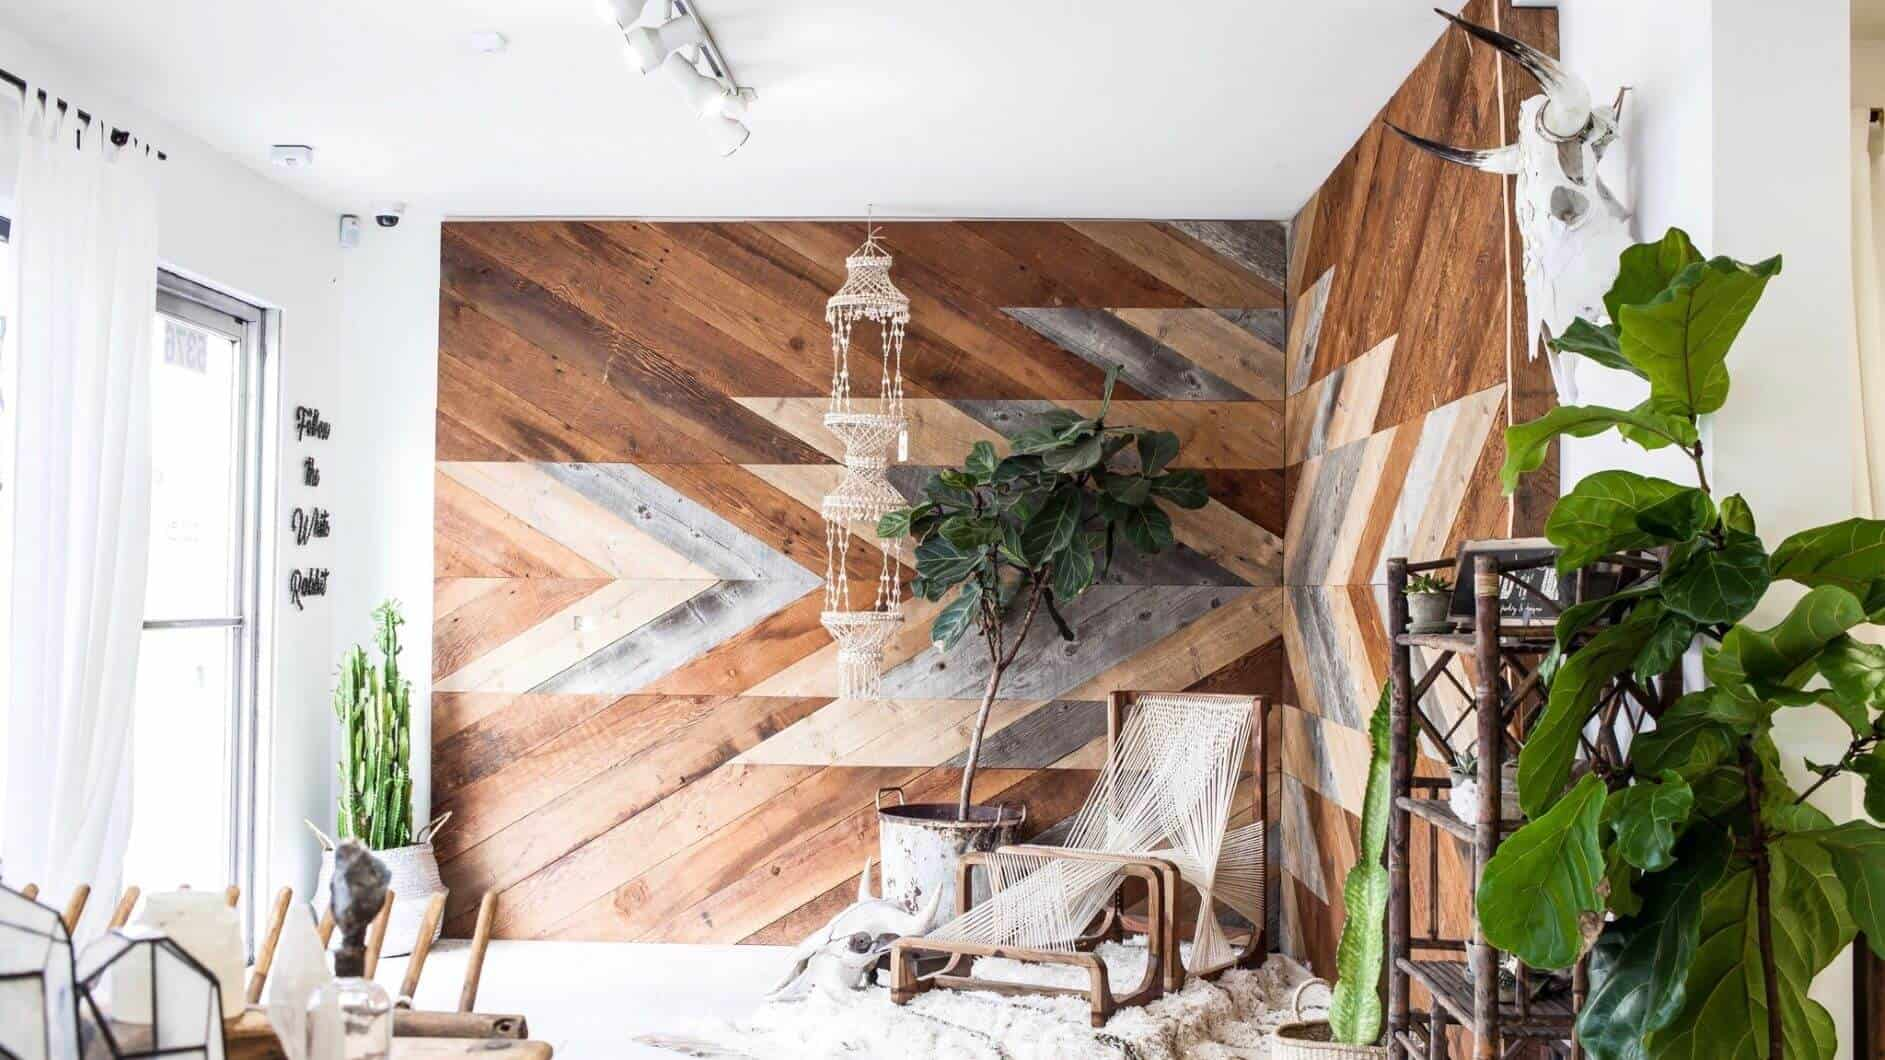 1701 1 - Reclaimed Faux Beams vs. Solid Beams - Which ones are right for your job?